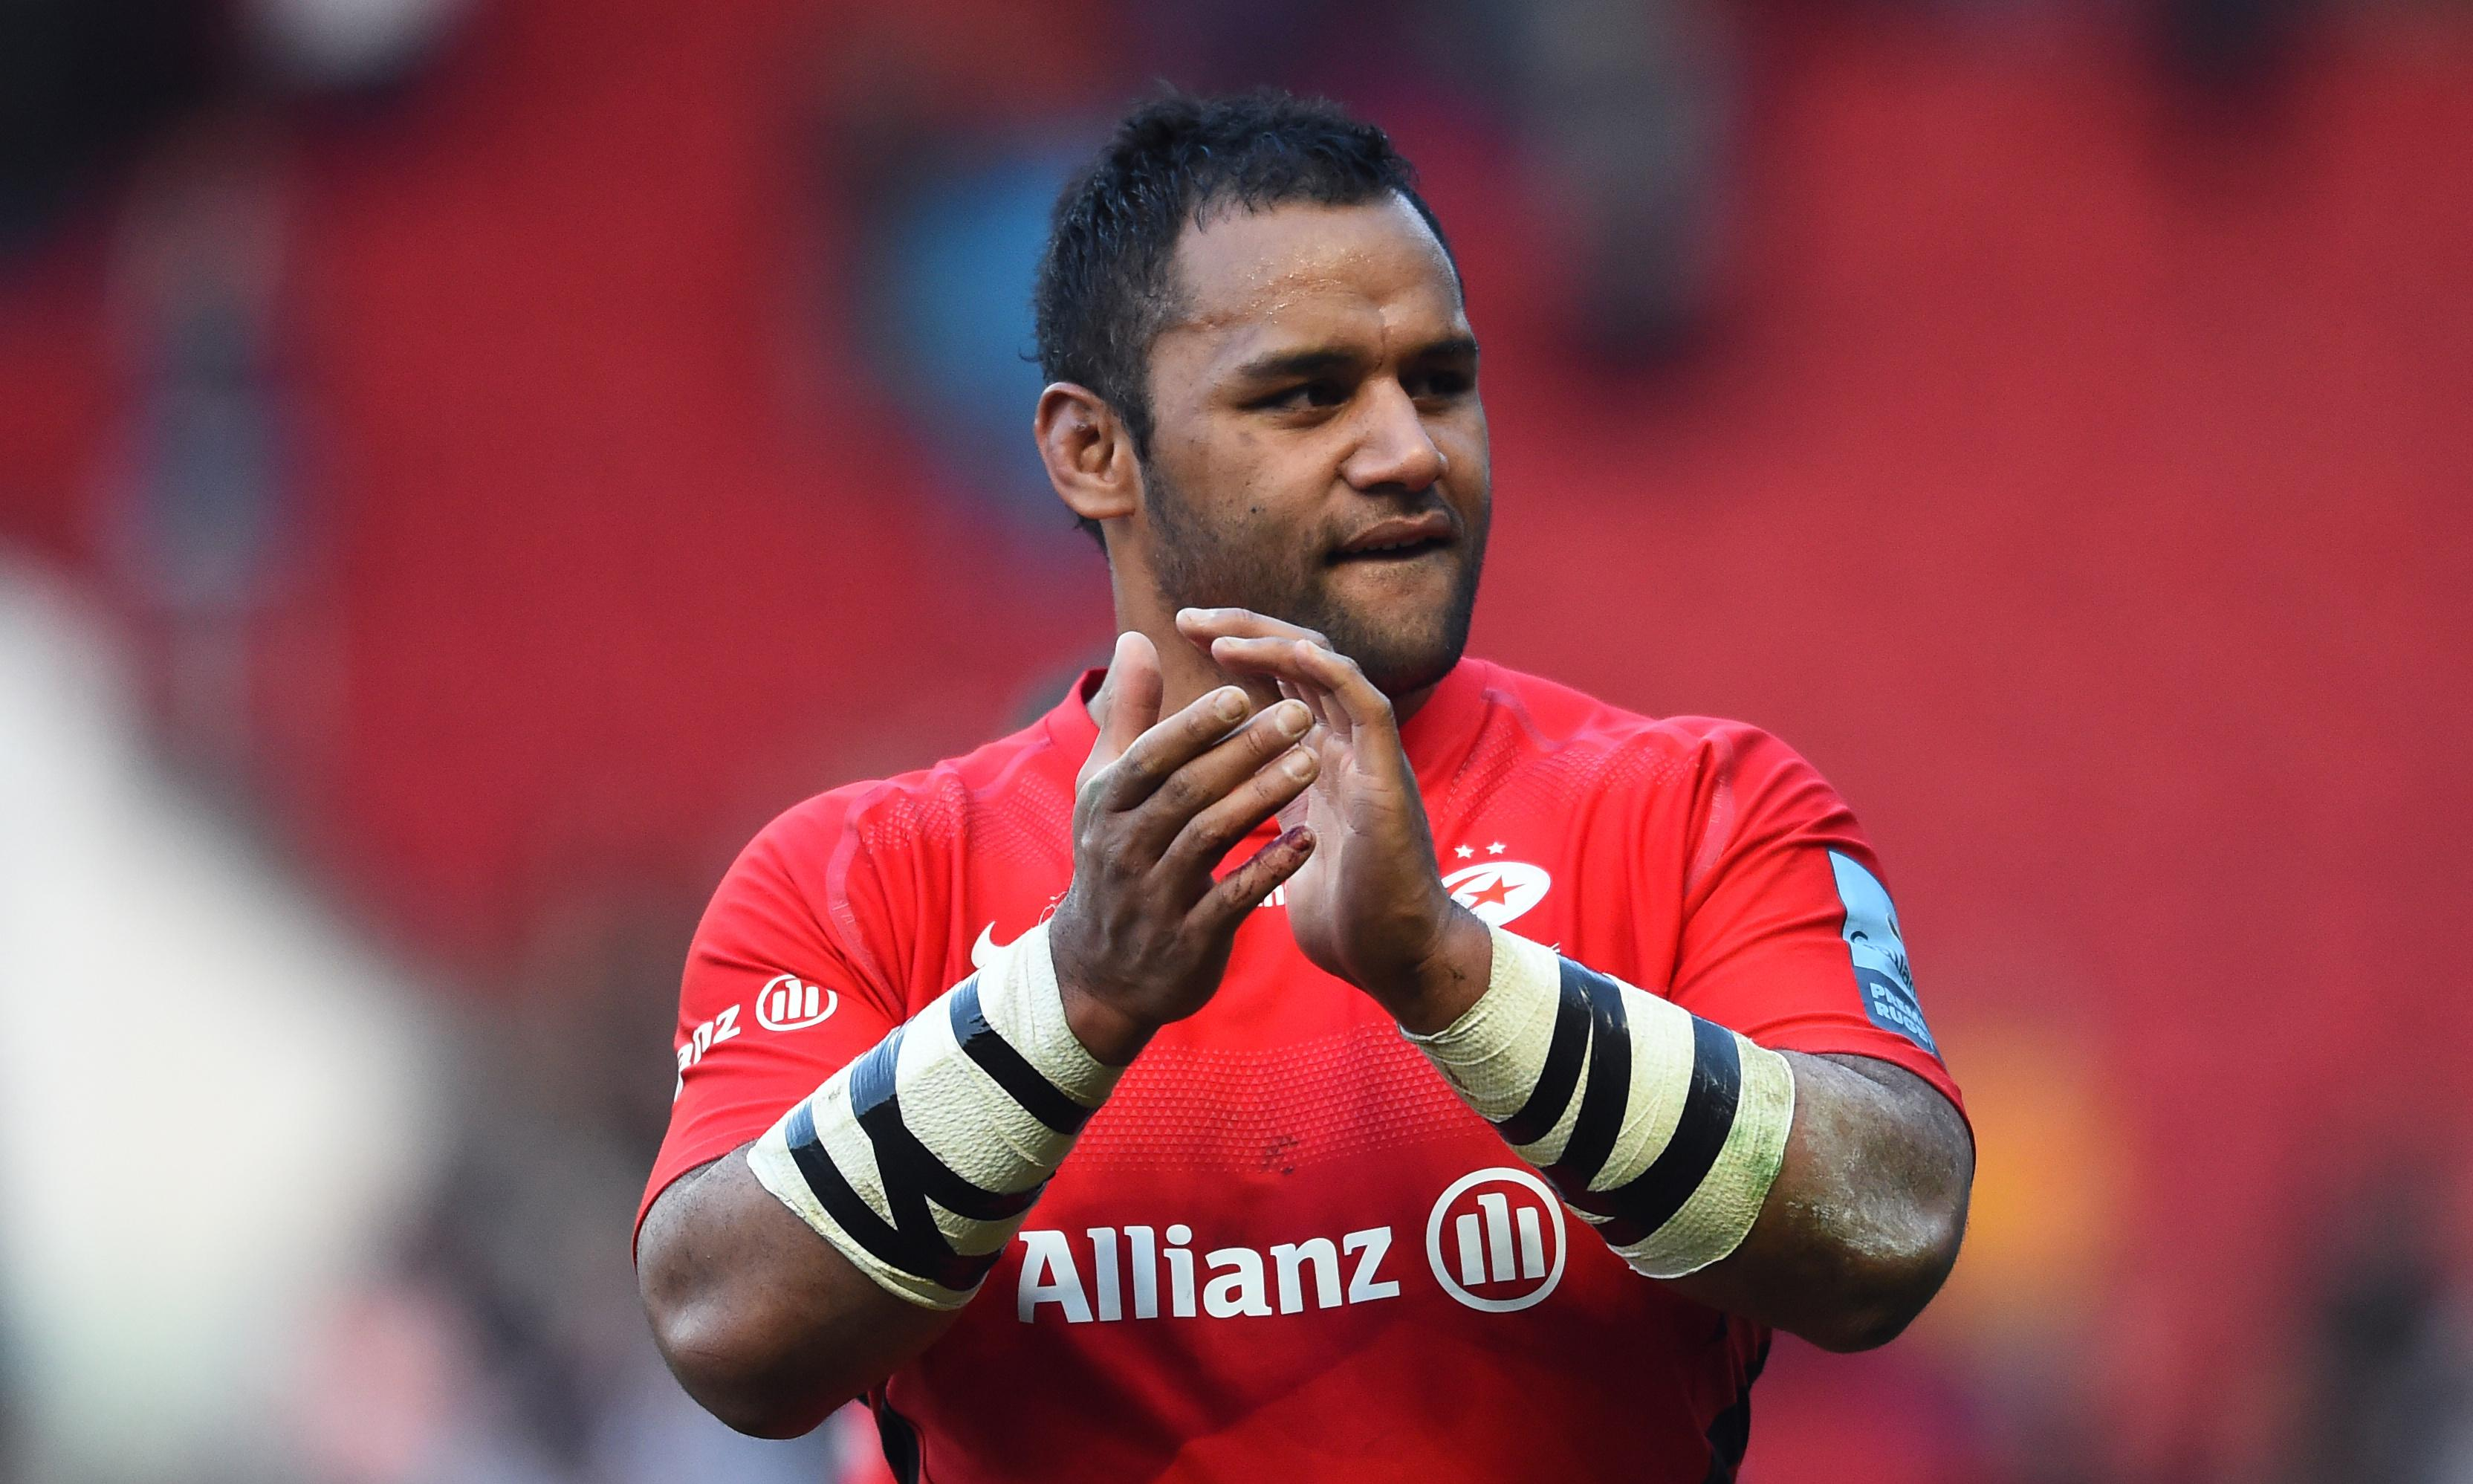 Billy Vunipola warned by Saracens over his support for Israel Folau